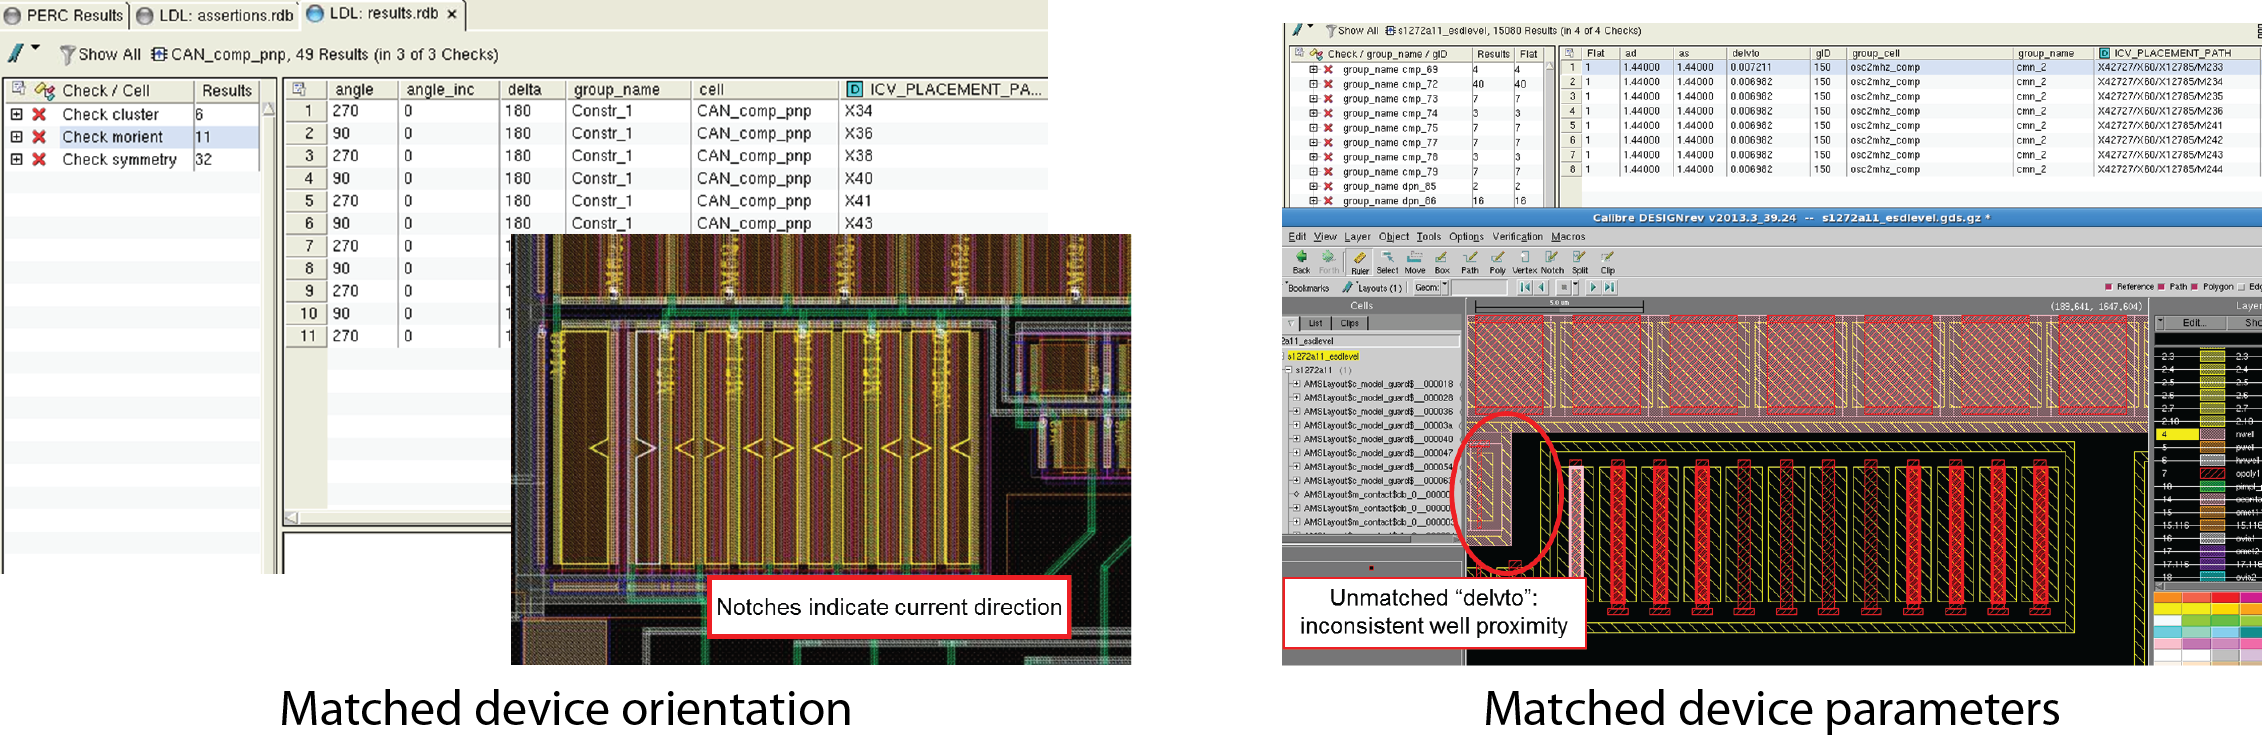 Semiconductor Engineering A Reliability Baseline Is Essential Symbolic Analysis For Automated Design Of Analogue Integrated Circuits Figure 4 Subtle Errors Are Often Difficult To Identify Without Validation 17